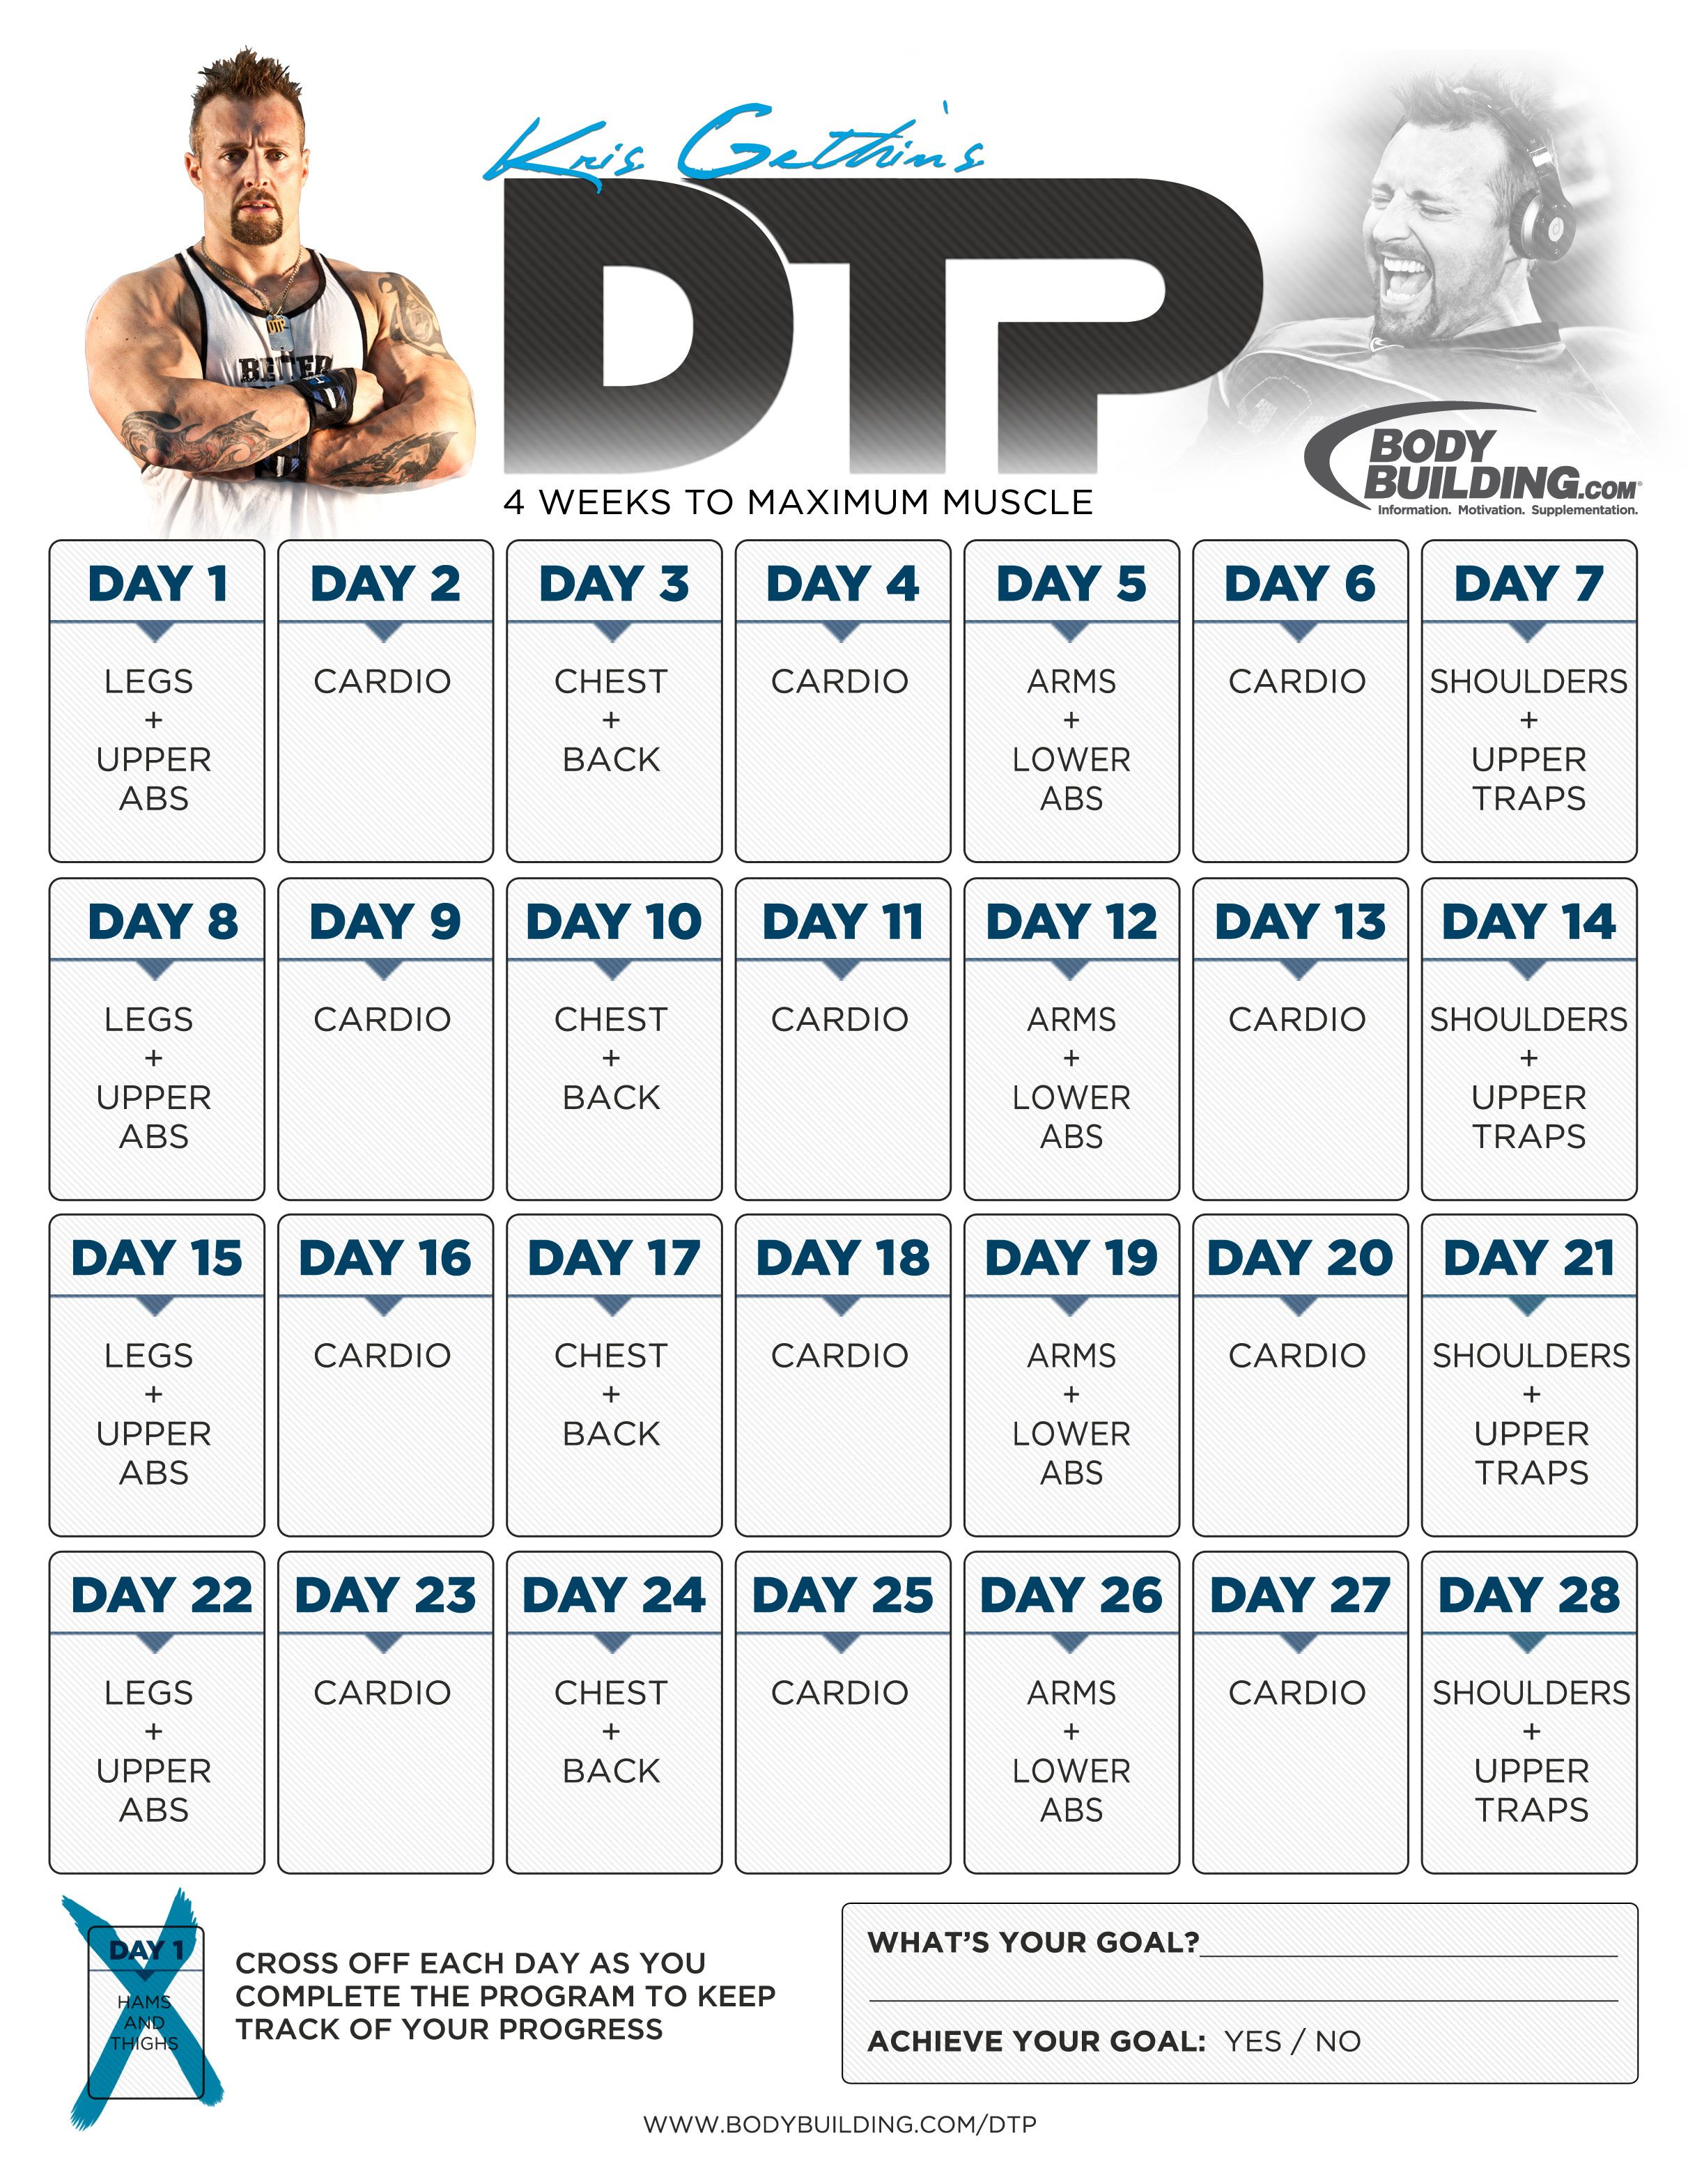 Kris Gethin's DTP: 4 Weeks To Maximum Muscle | Muscles, Workout ...